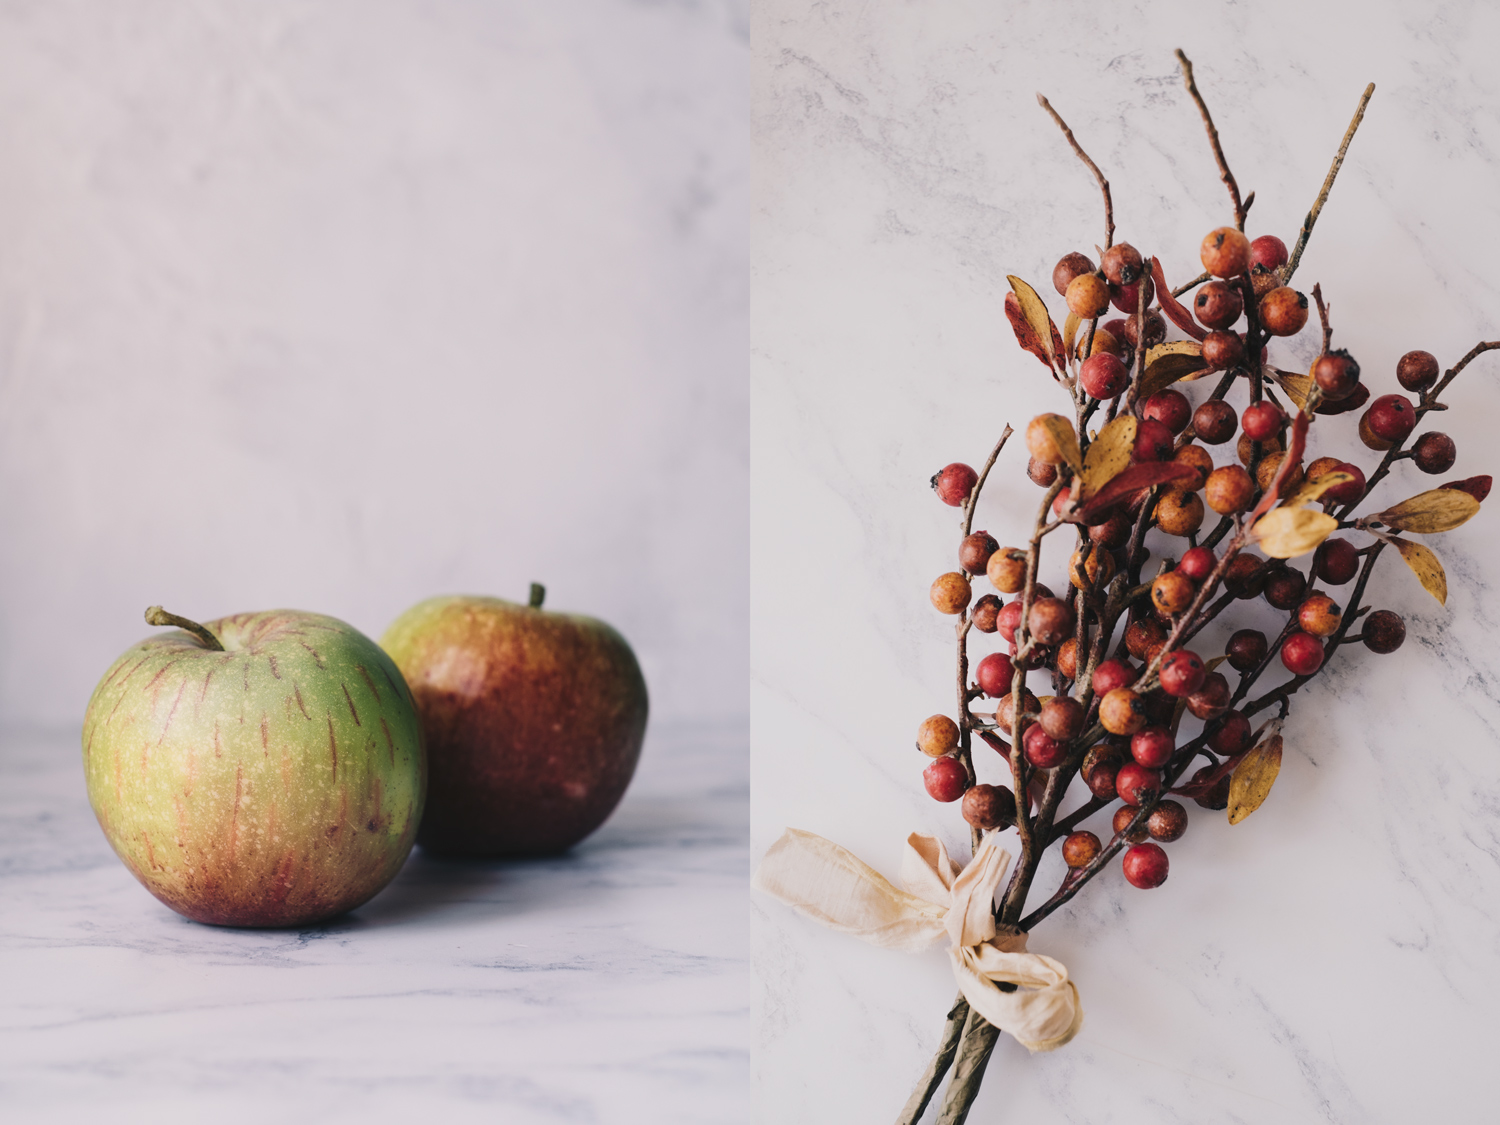 Photographing a Still Life Series for Exhibition or a Portfolio